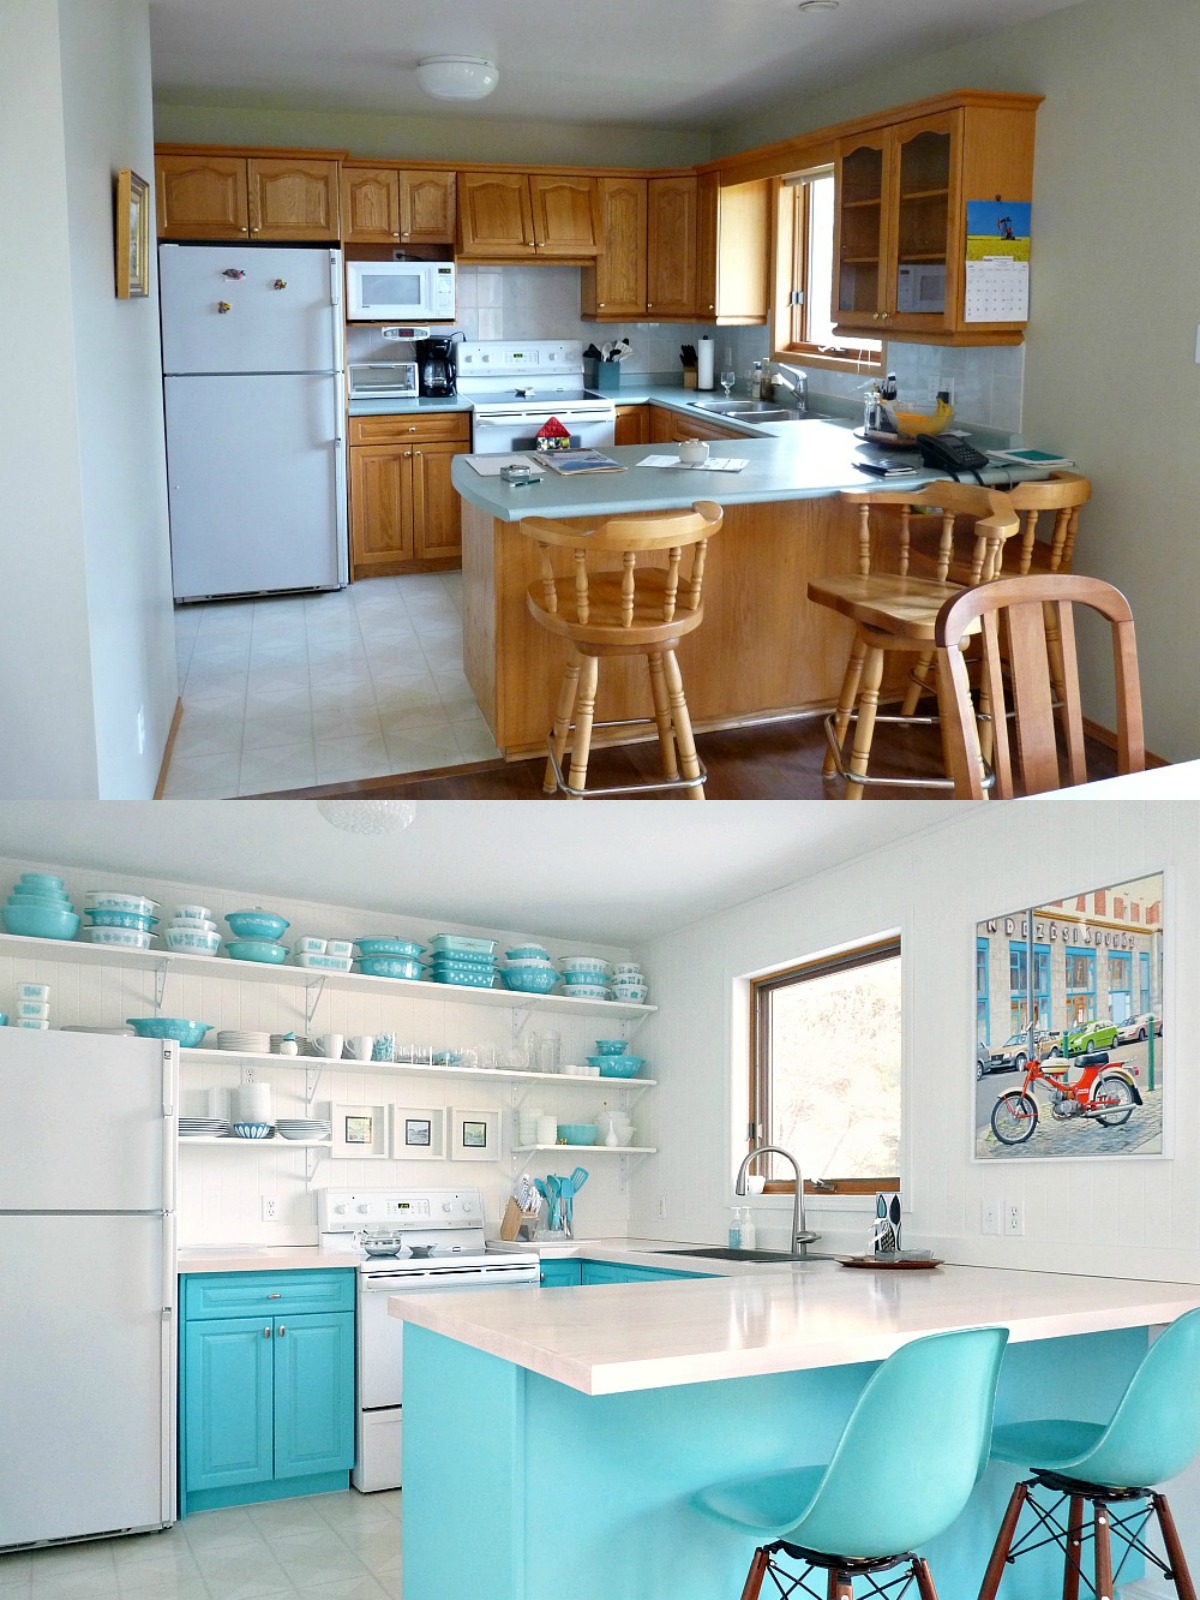 cabinet refinishing paint vs stain vs refinishing kitchen cabinets How to Paint Kitchen Cabinets